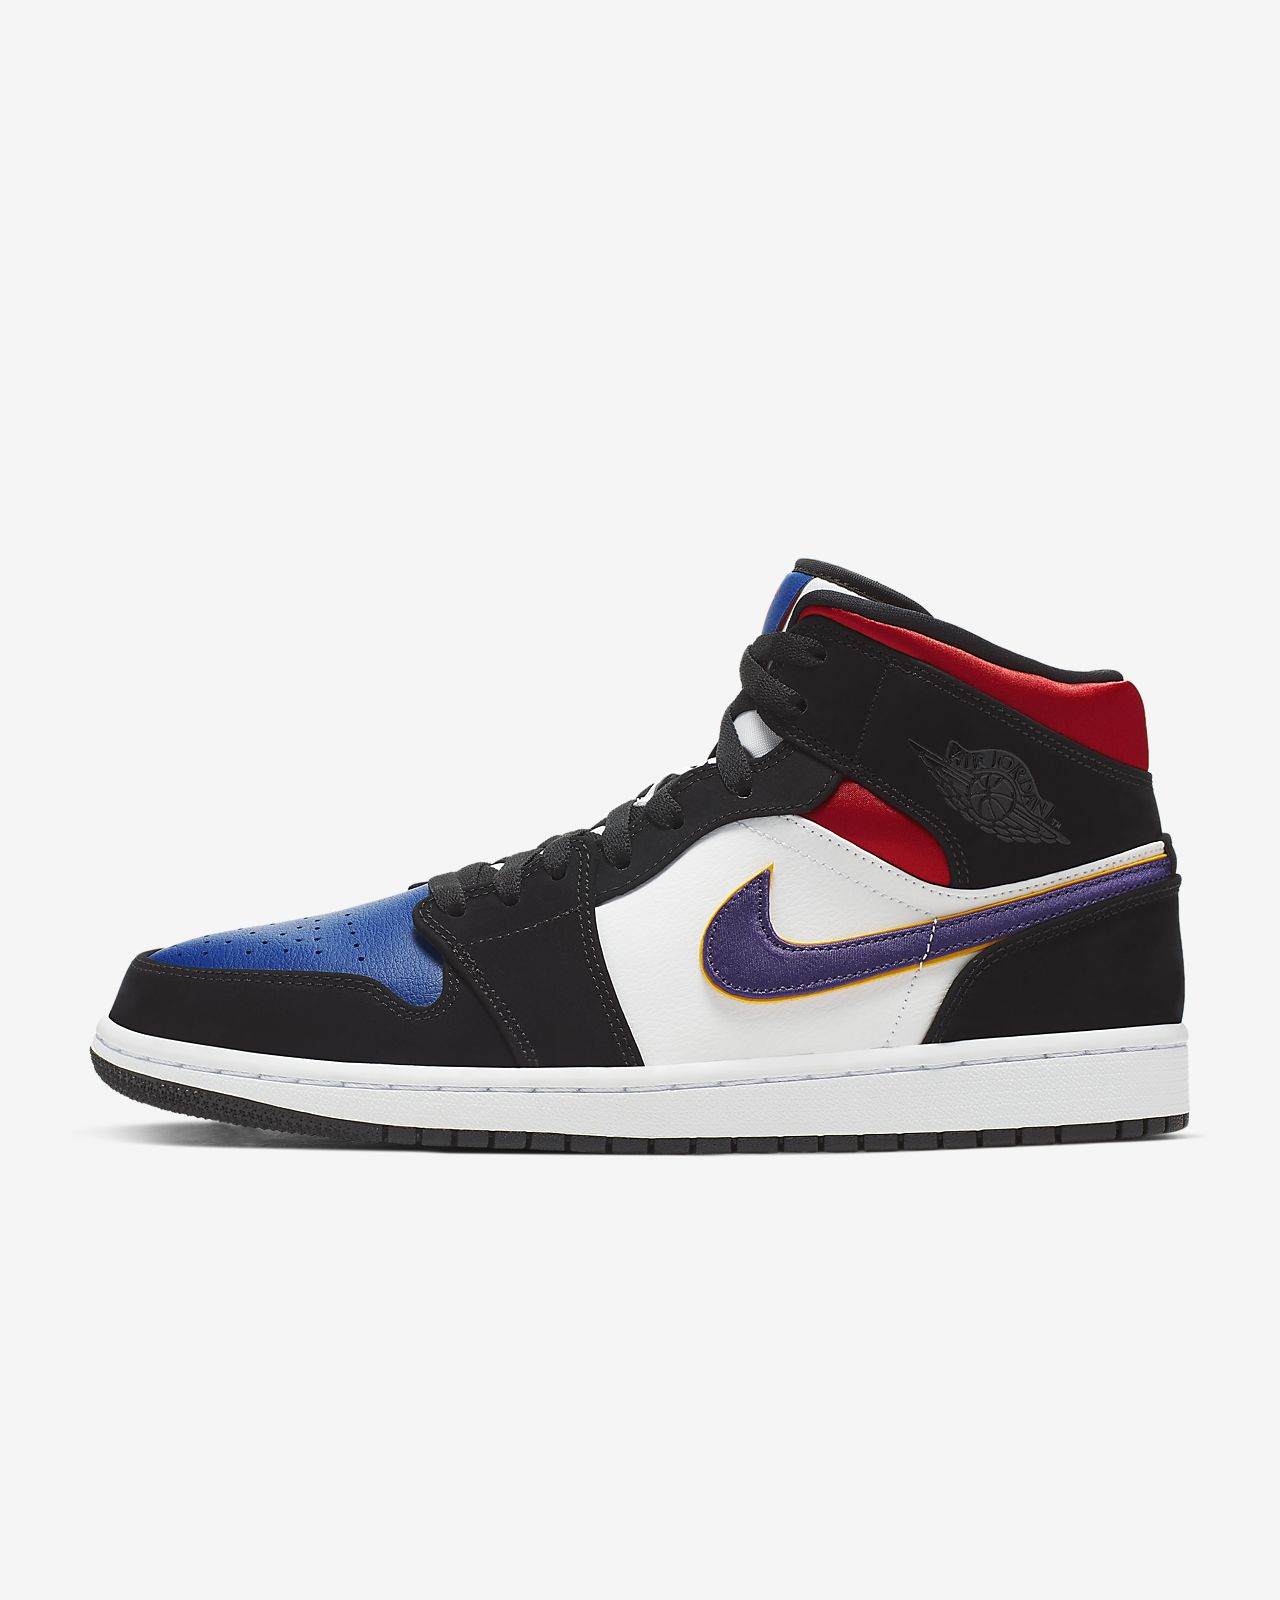 buy online 35c40 f4b37 Air Jordan 1 Mid SE Men's Shoe